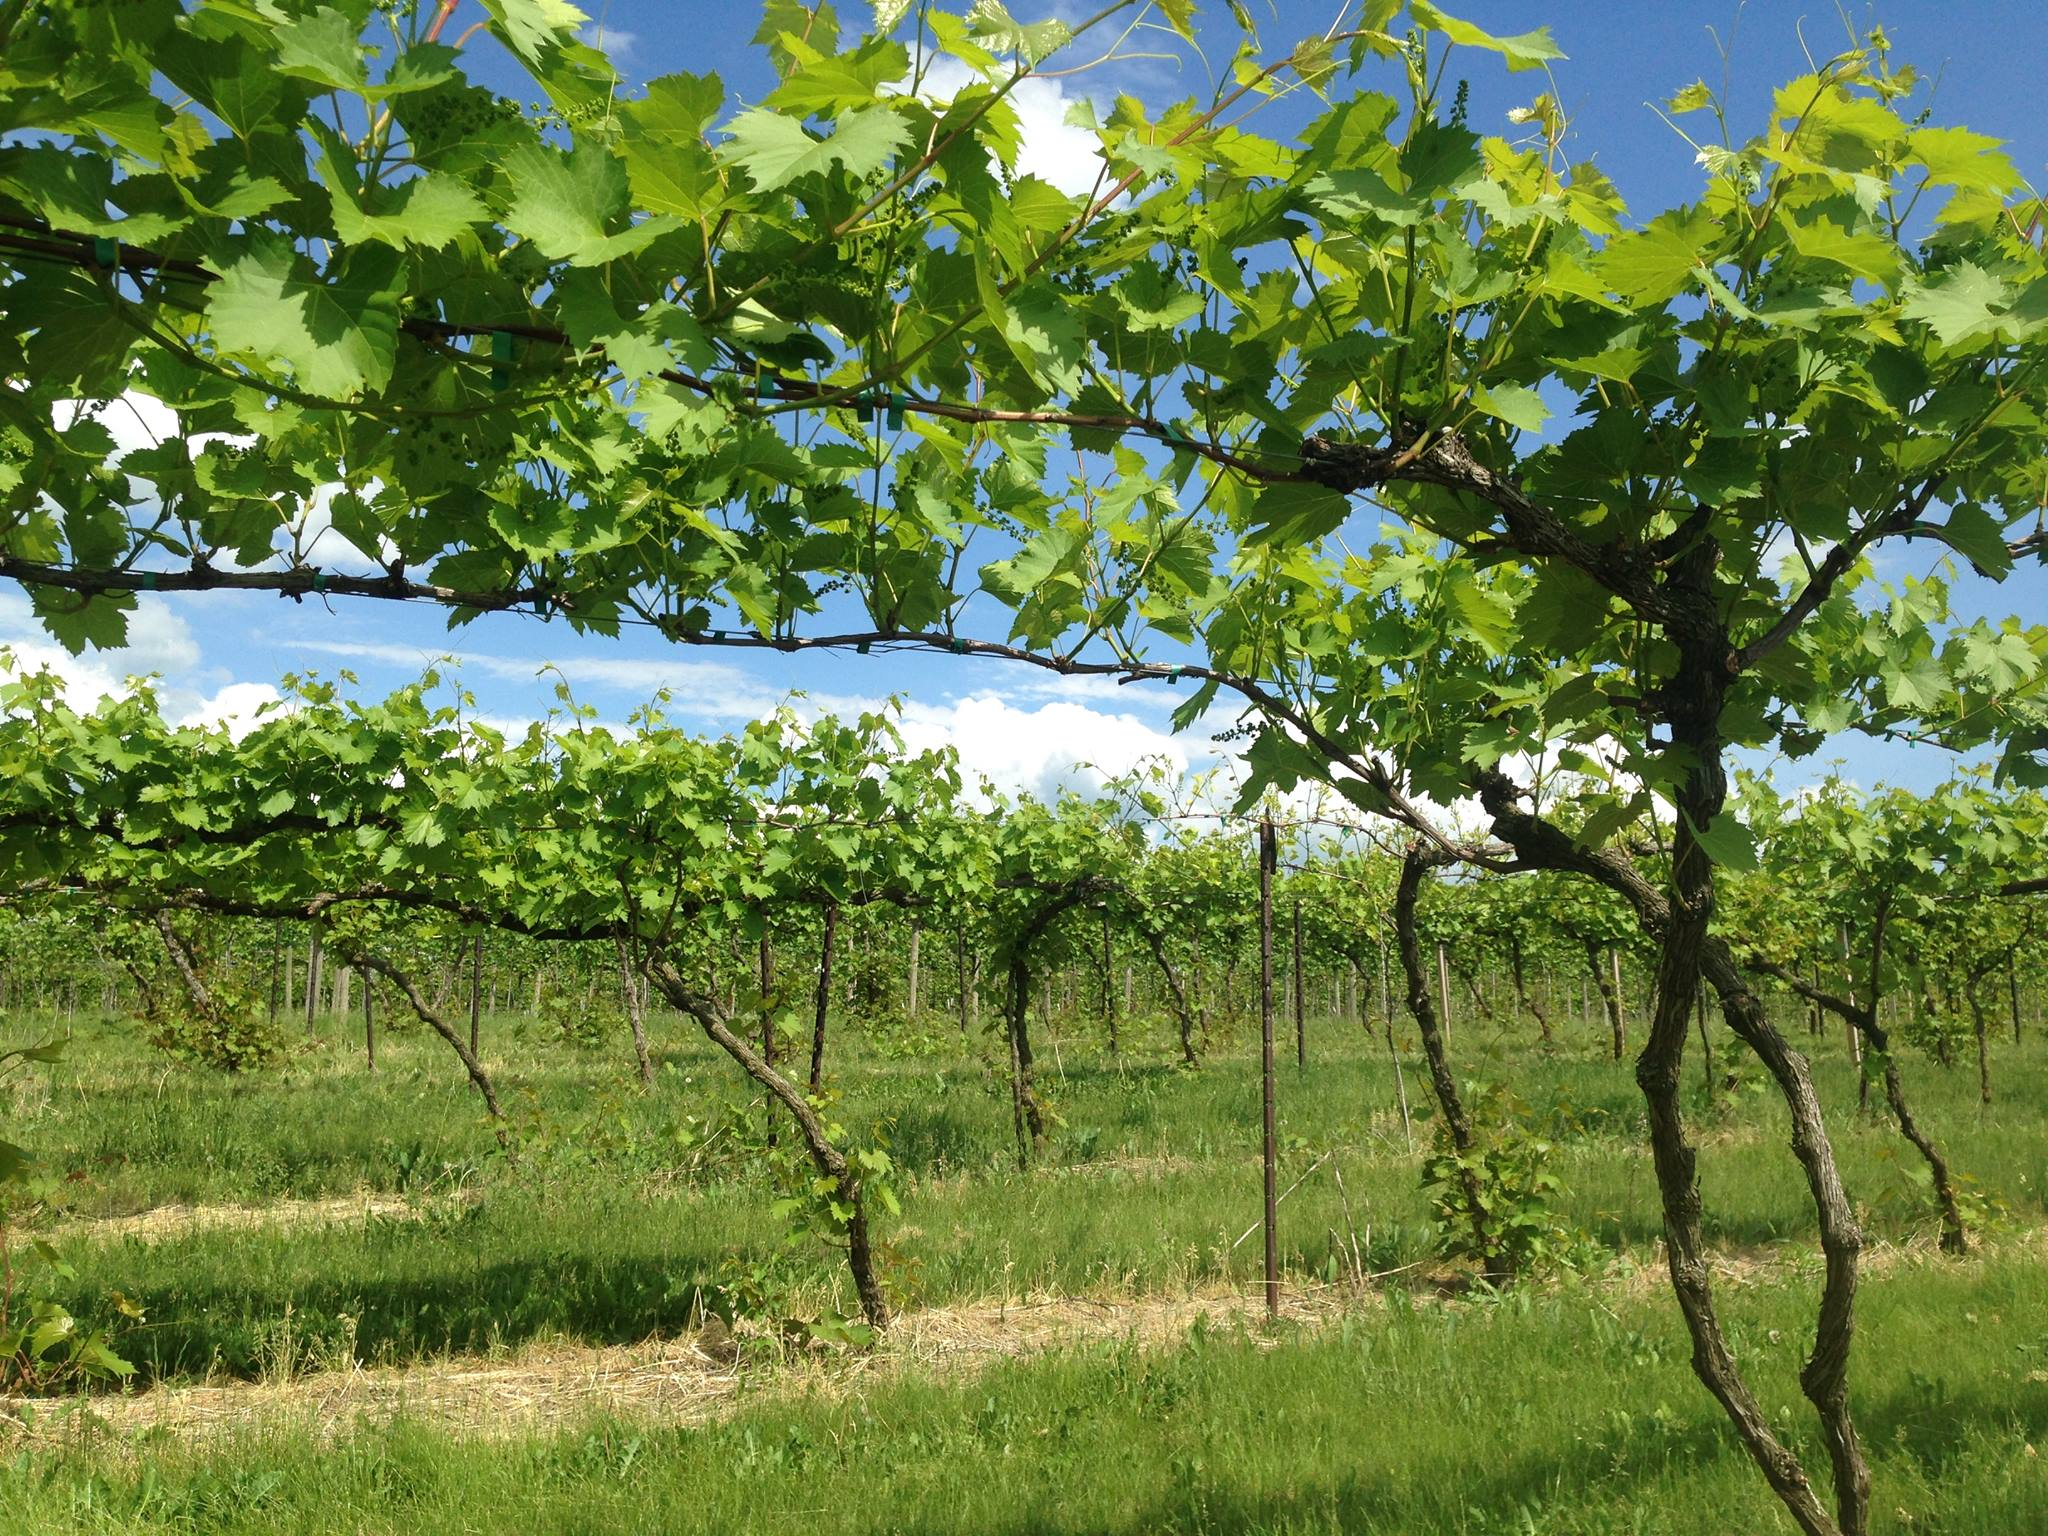 Vermont grape vines trained high